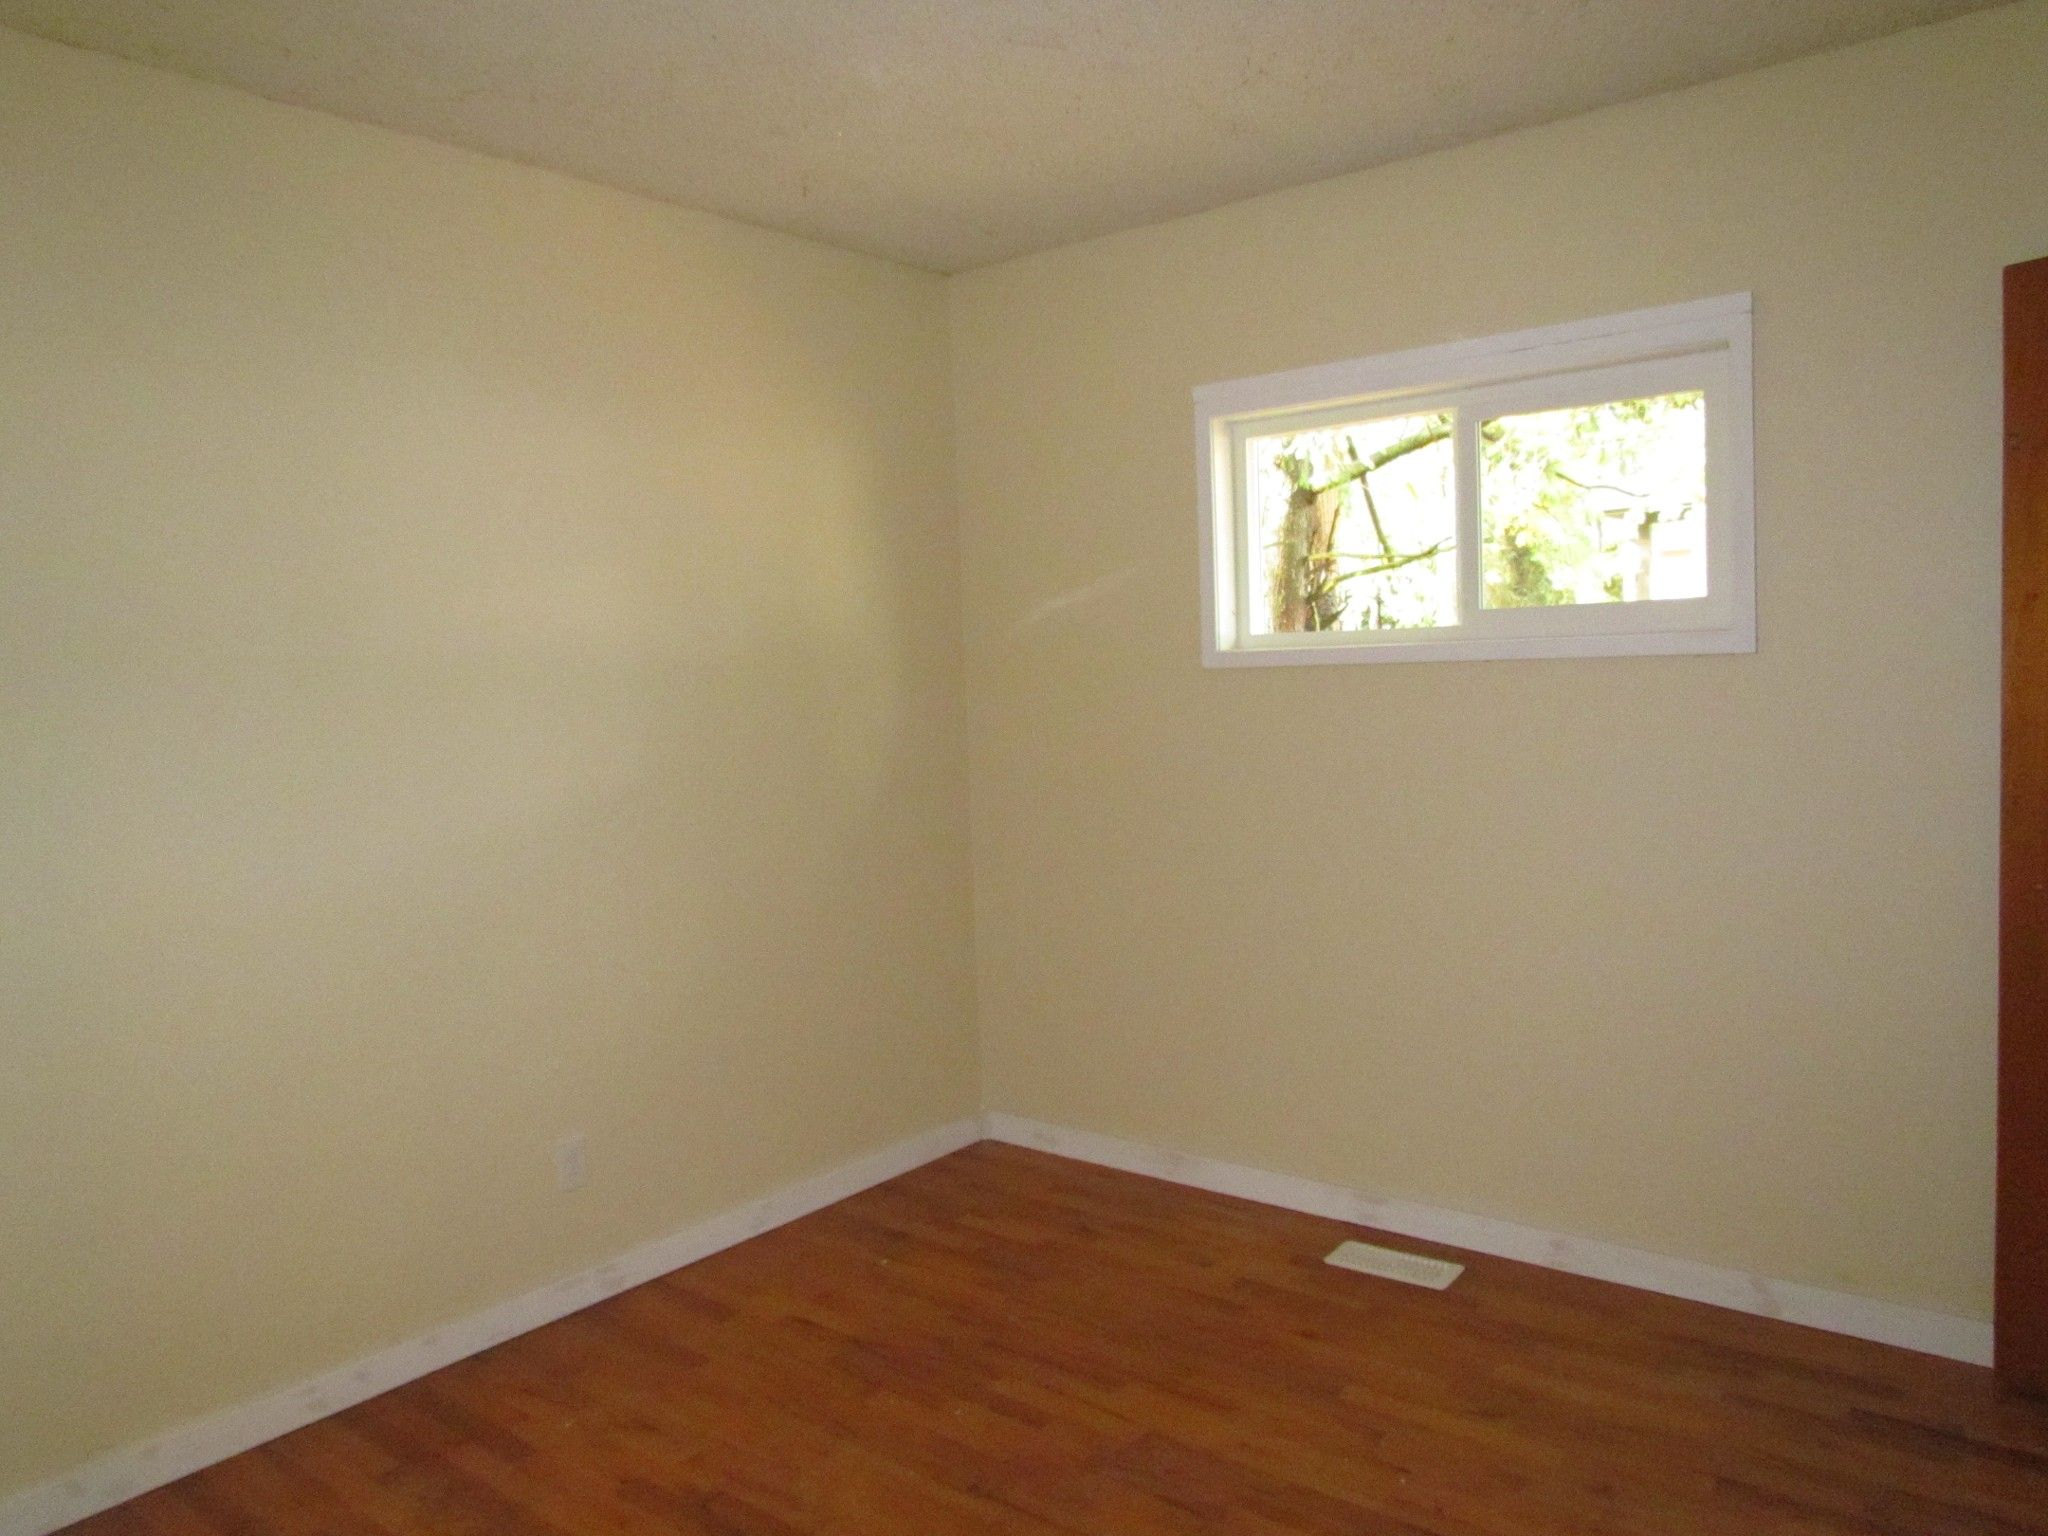 Photo 5: Photos: 1625 Kirklyn St. in Abbotsford: Central Abbotsford House for rent